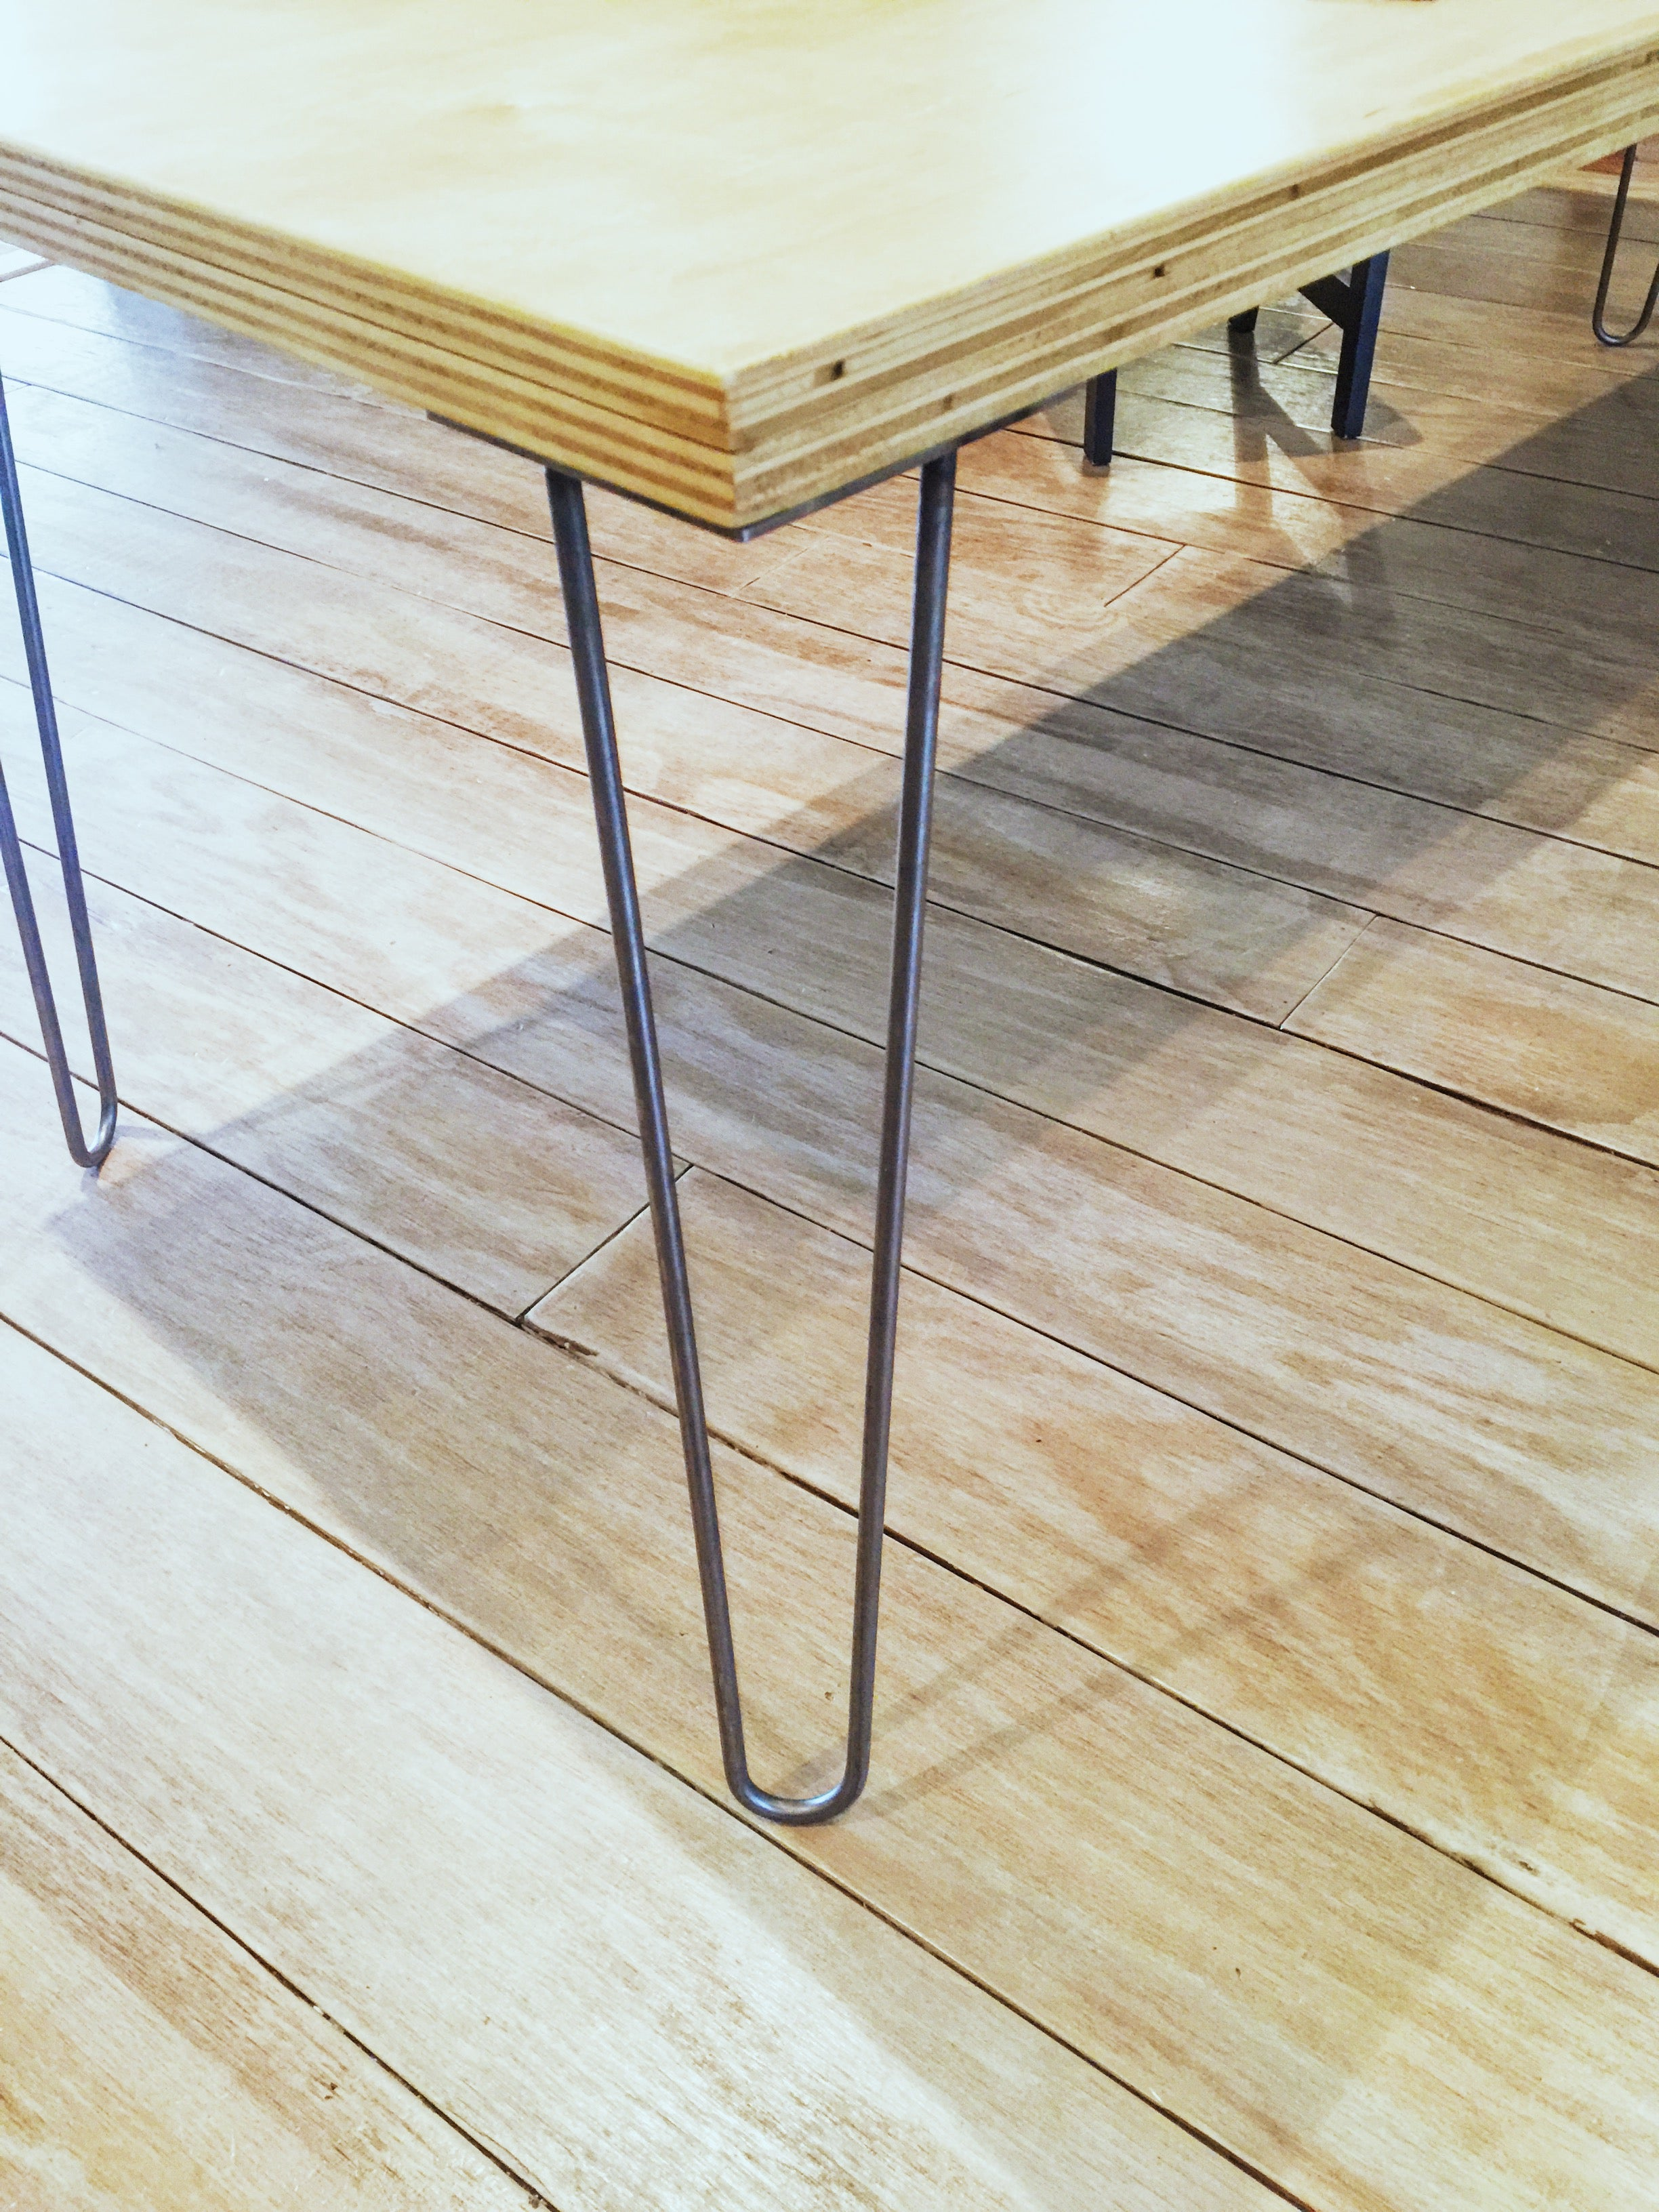 Uncategorized How To Attach Hairpin Legs build a modern back to school desk with diy hairpin legs i like bring my right up the edge of tables but some people prefer put them inside bit exaggerate angled look ha